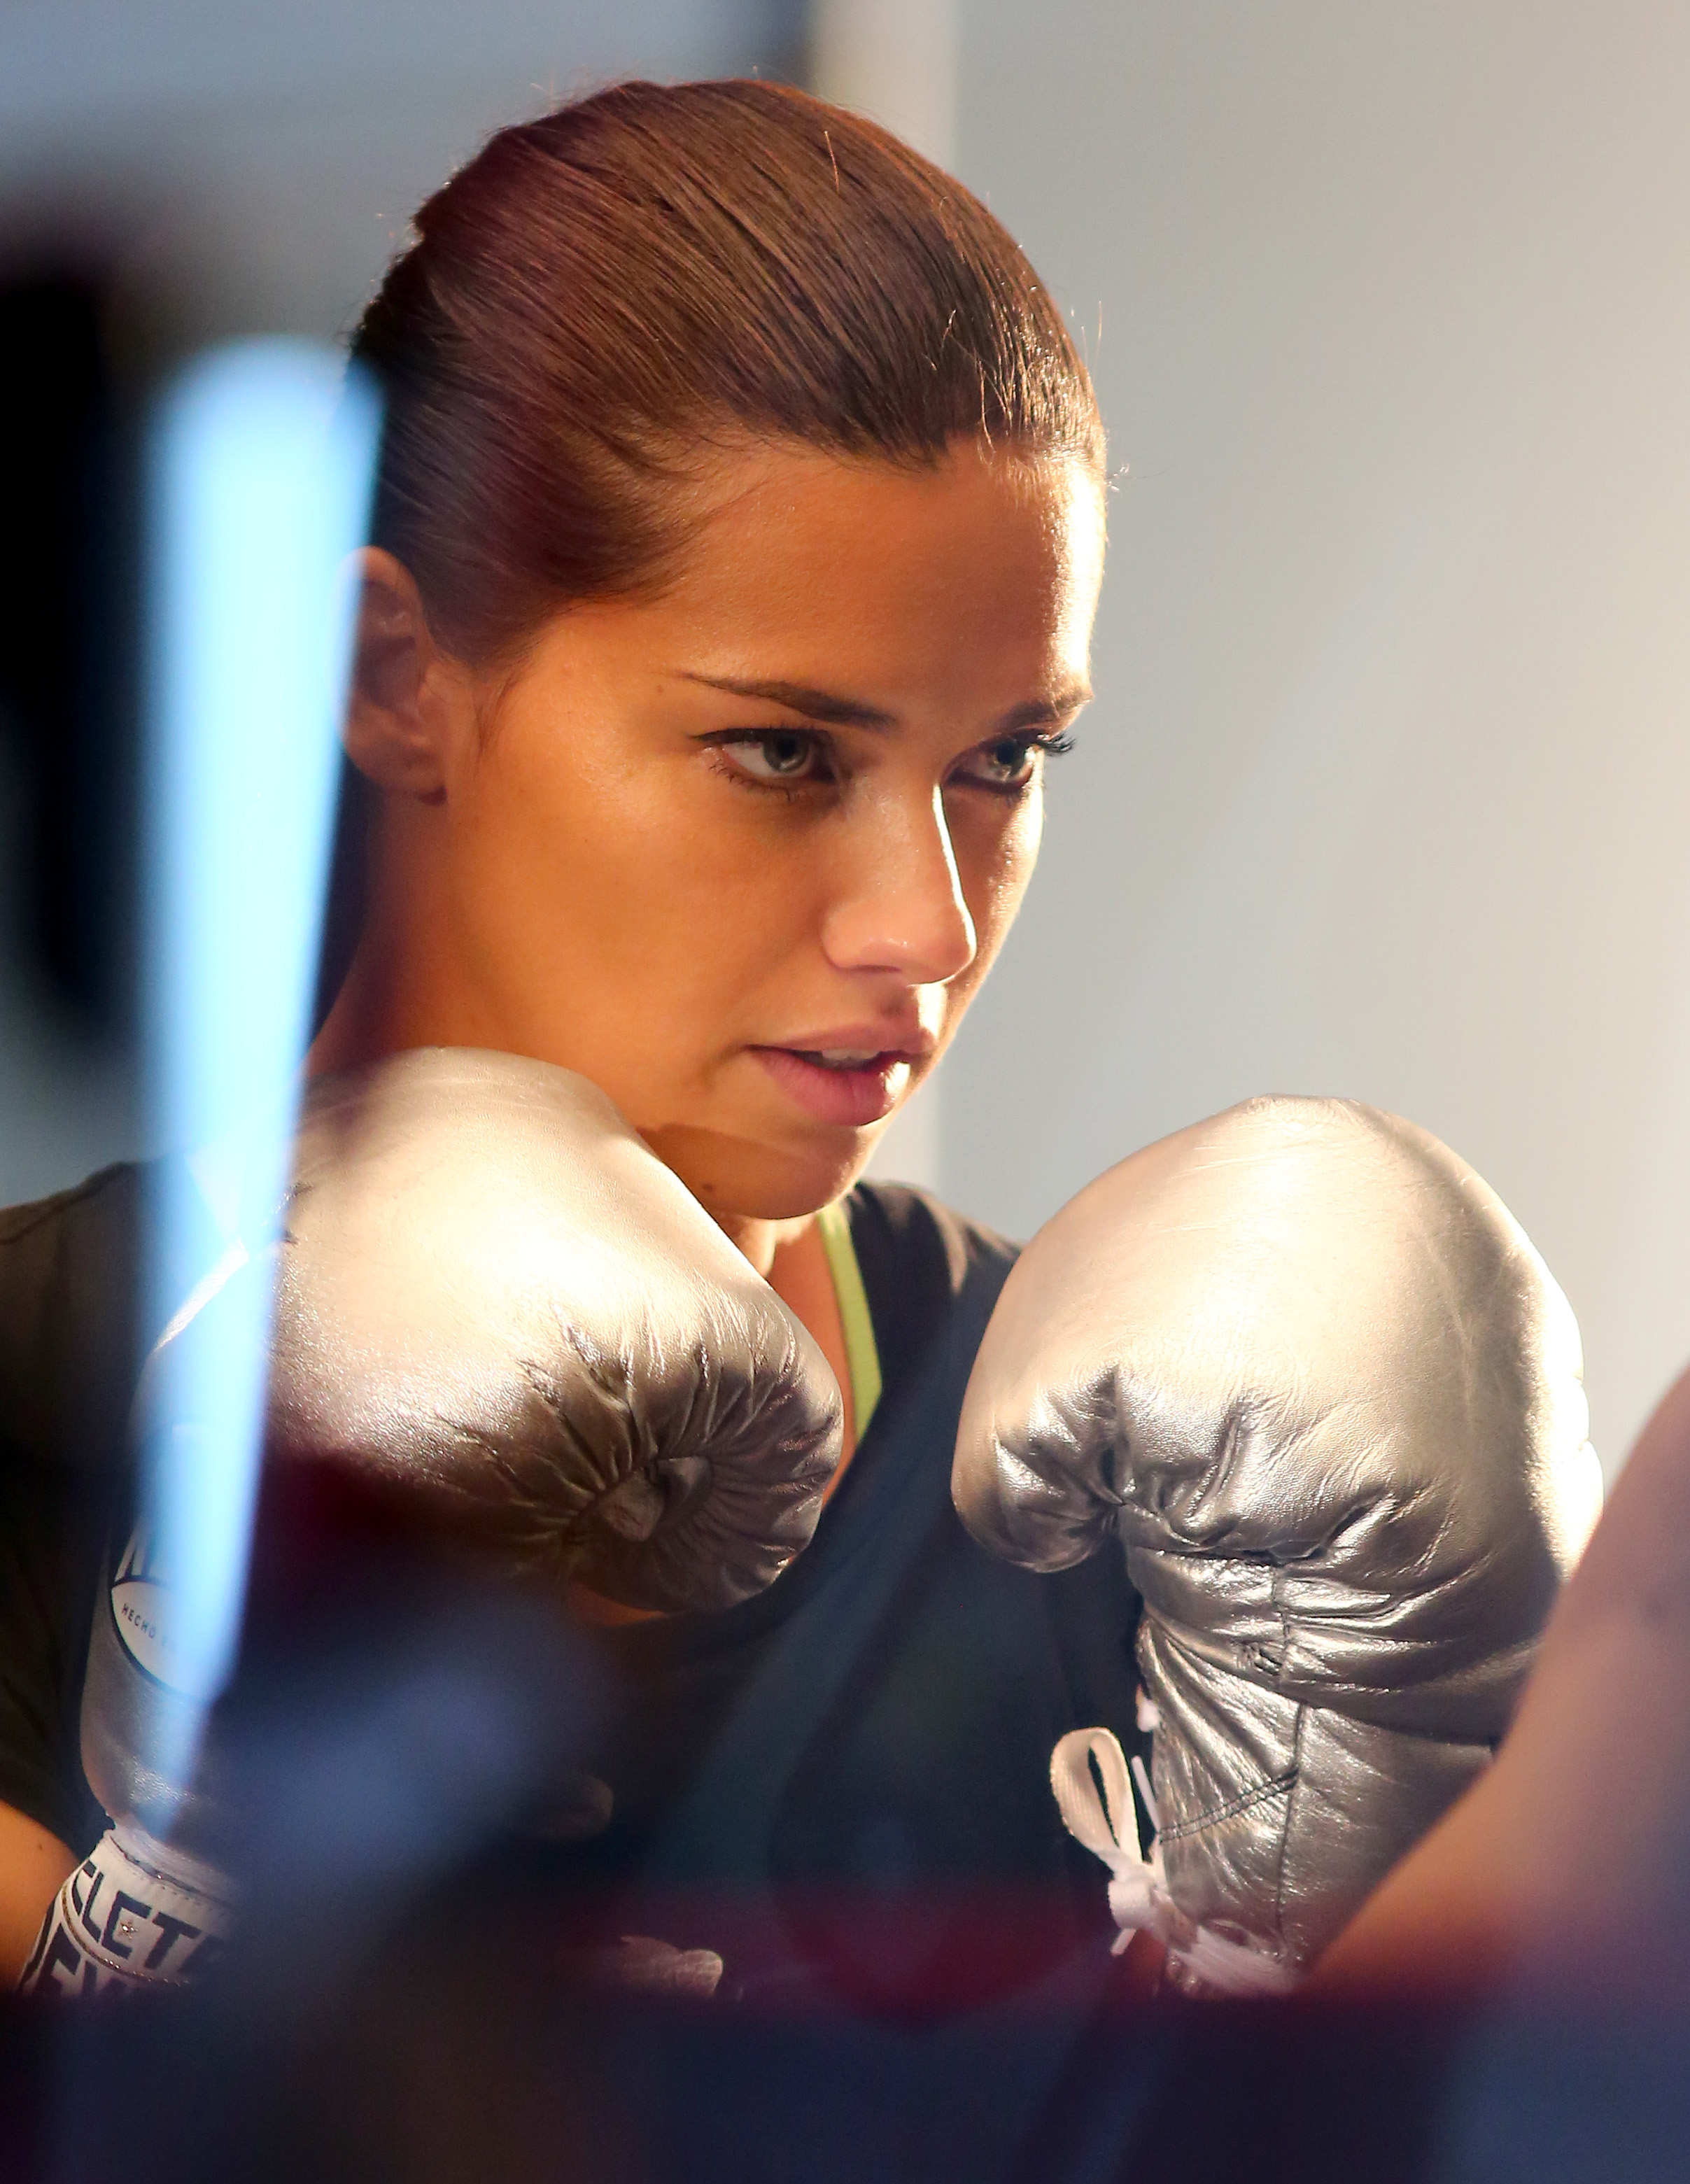 Adriana Lima spotted at the gym today in NYC boxing with her trainer.